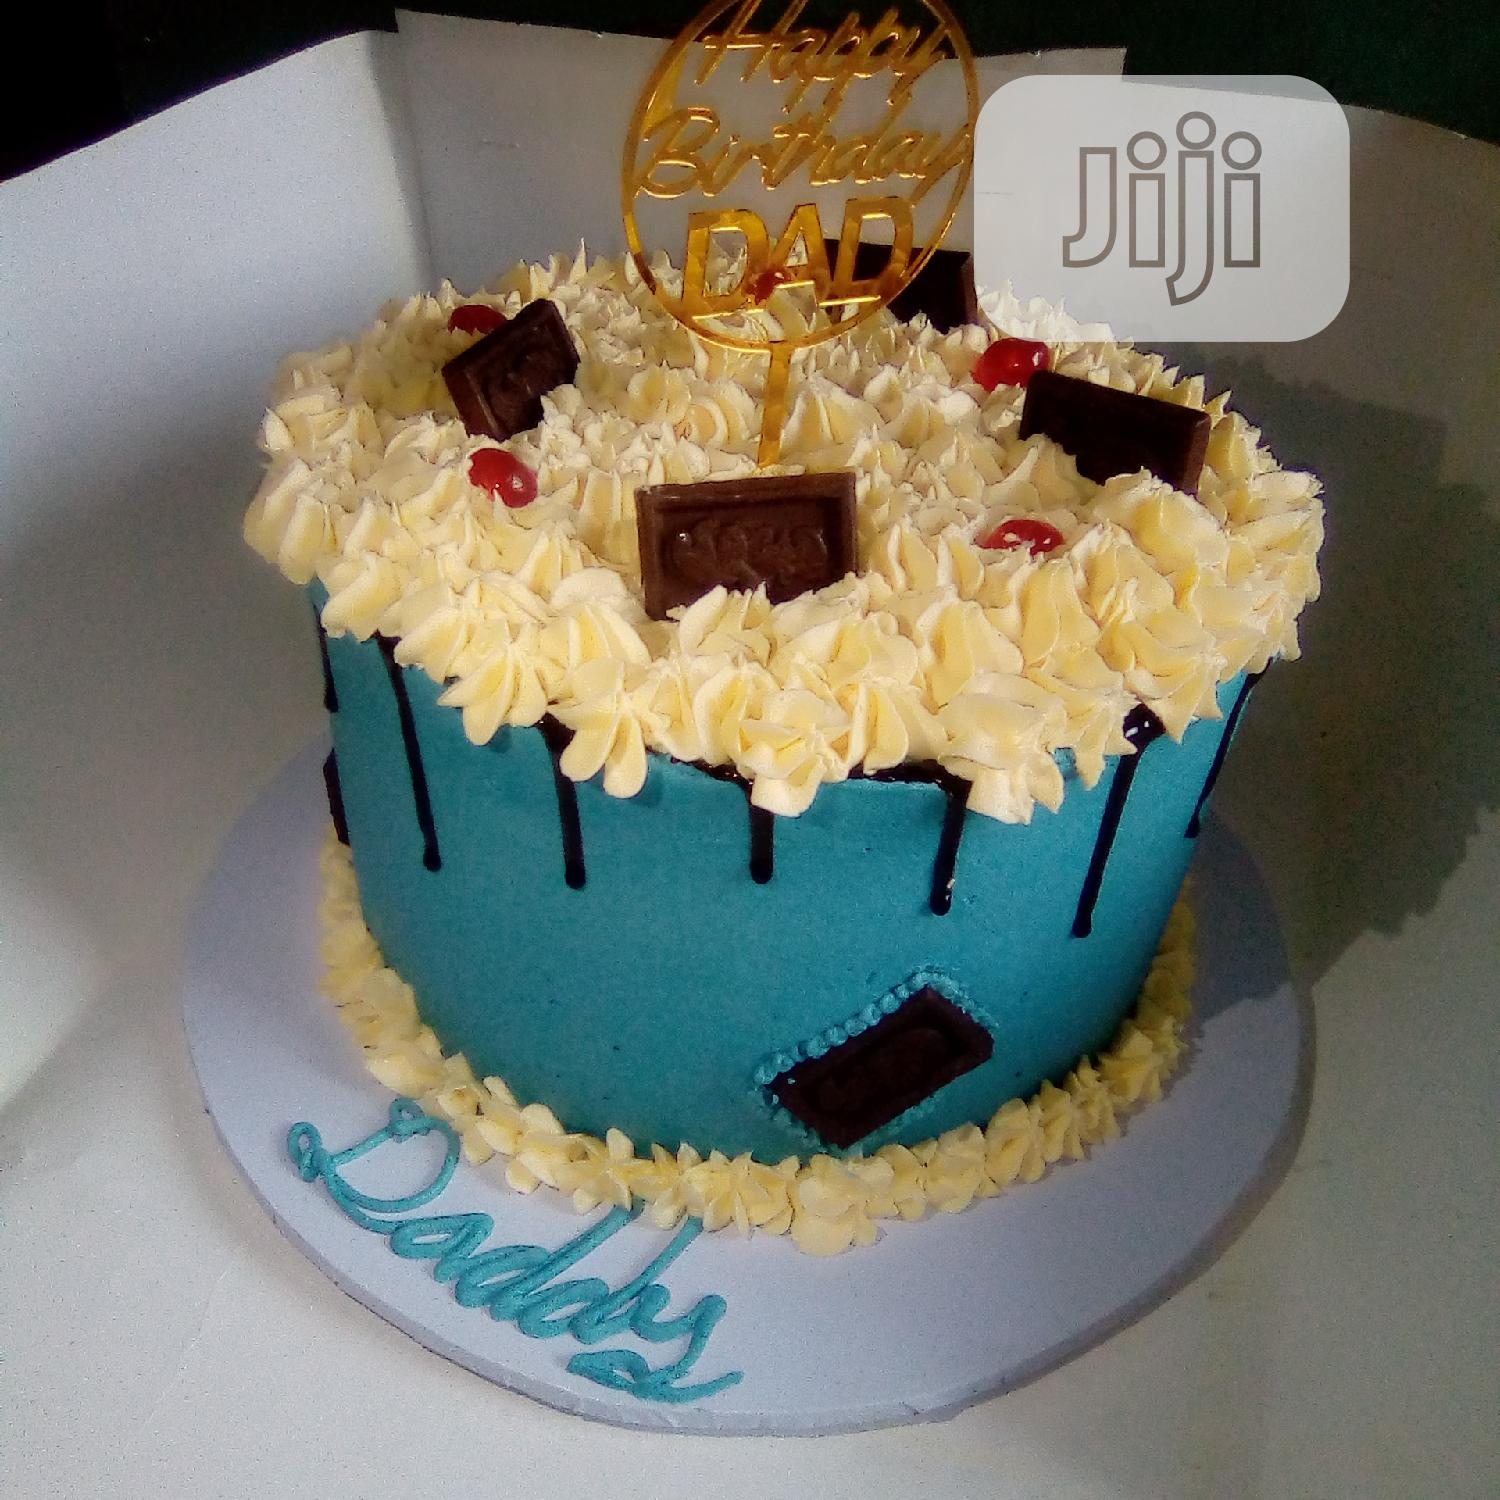 Tall and Yummy Skye Blue 2 in 1 Drip Birthday Cake